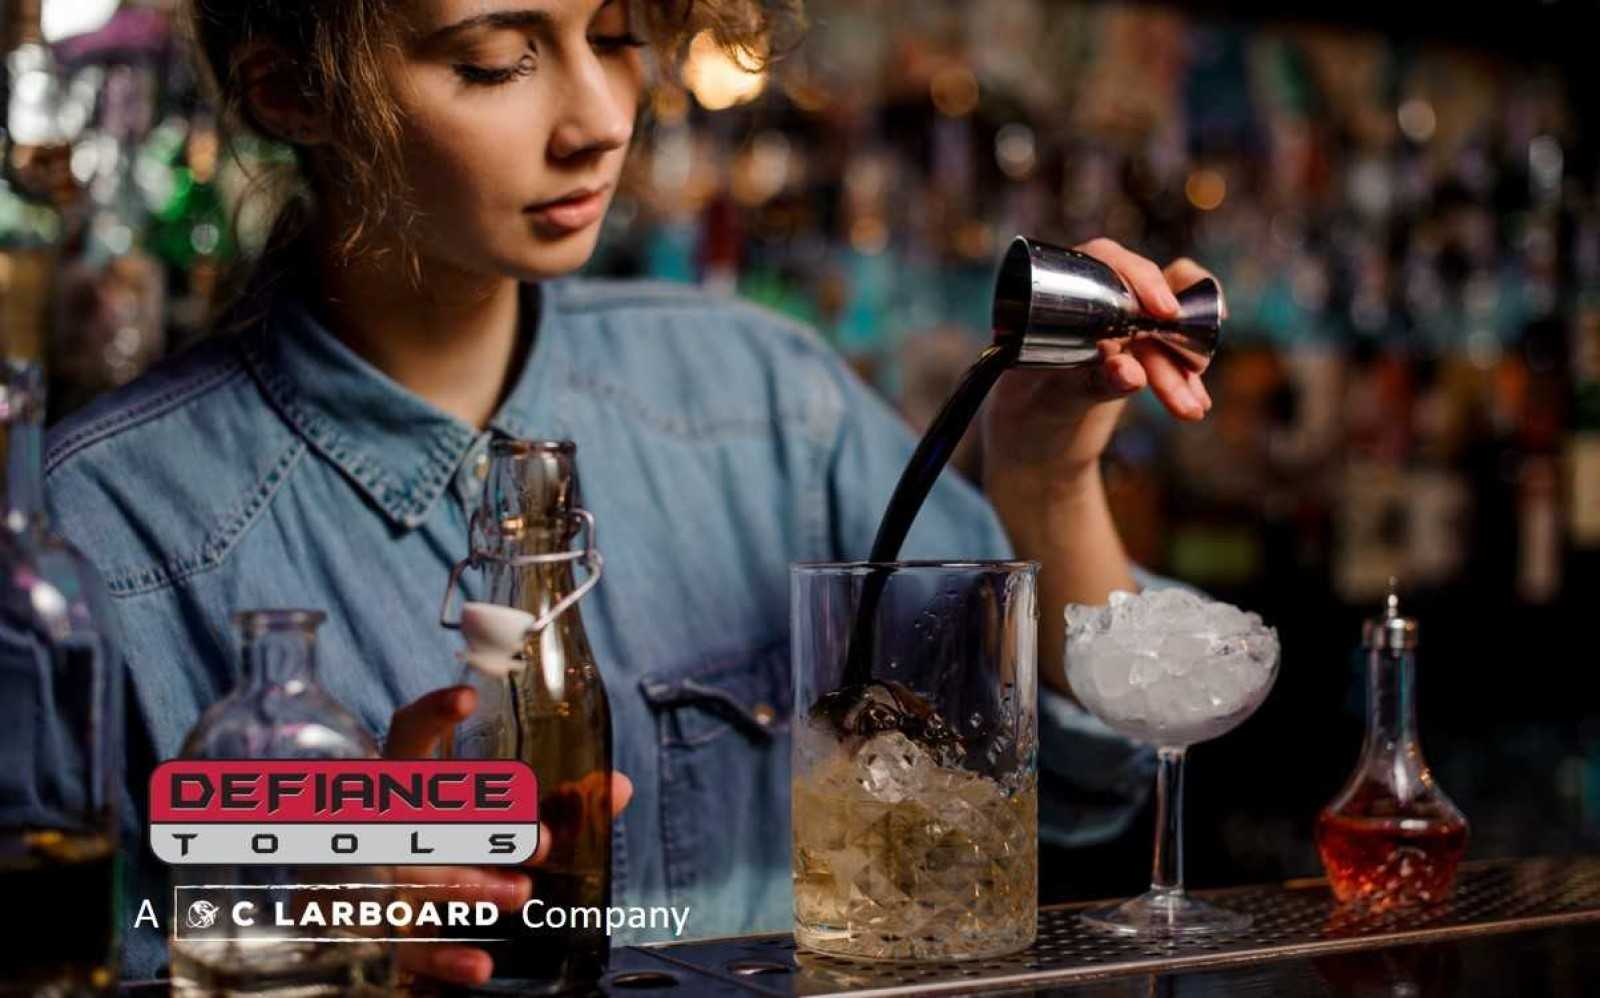 professional Mixology and cocktail tools